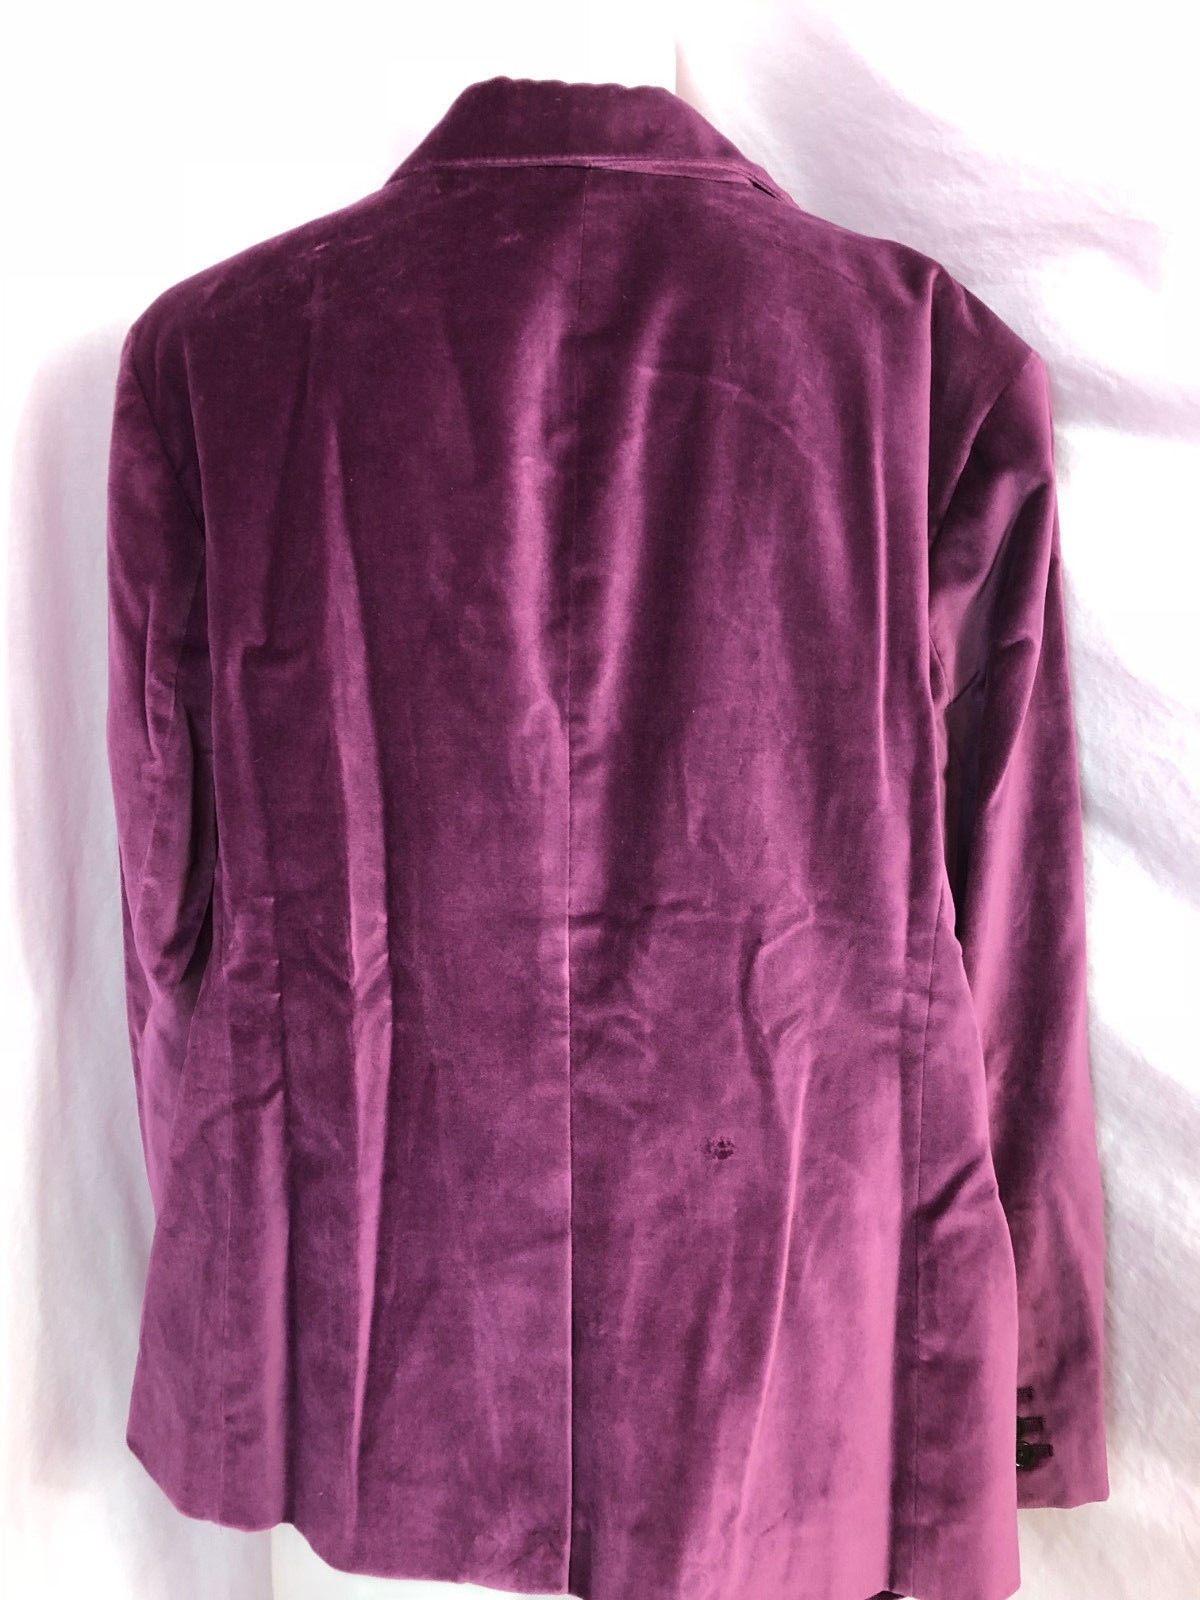 Talbots Woman Velveteen One Button Blazer Size 20WP, Plum, NWT